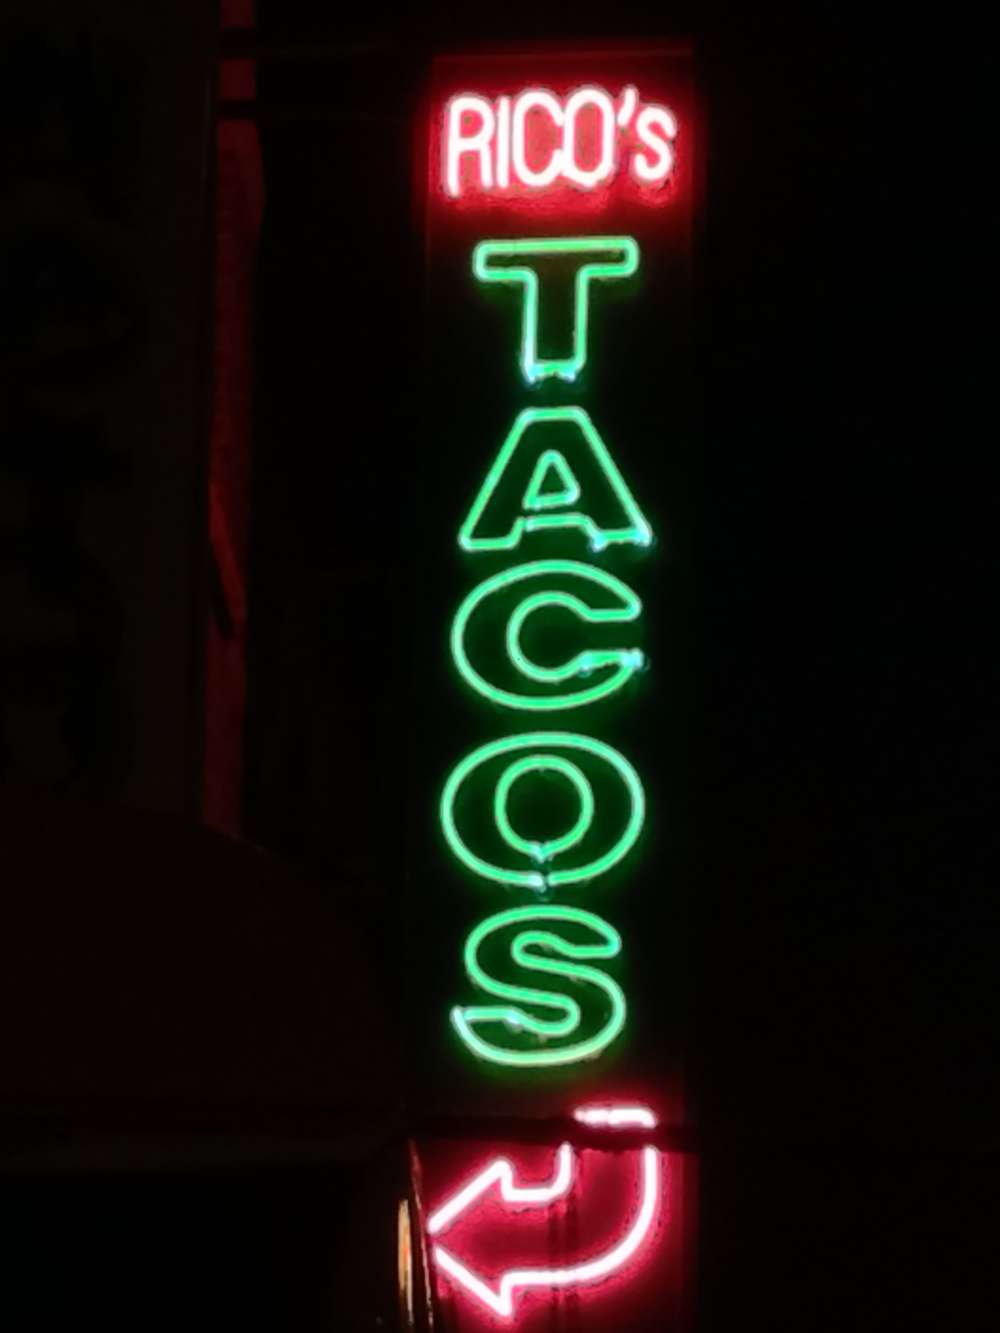 The tacos were okay but loved the neon sign.